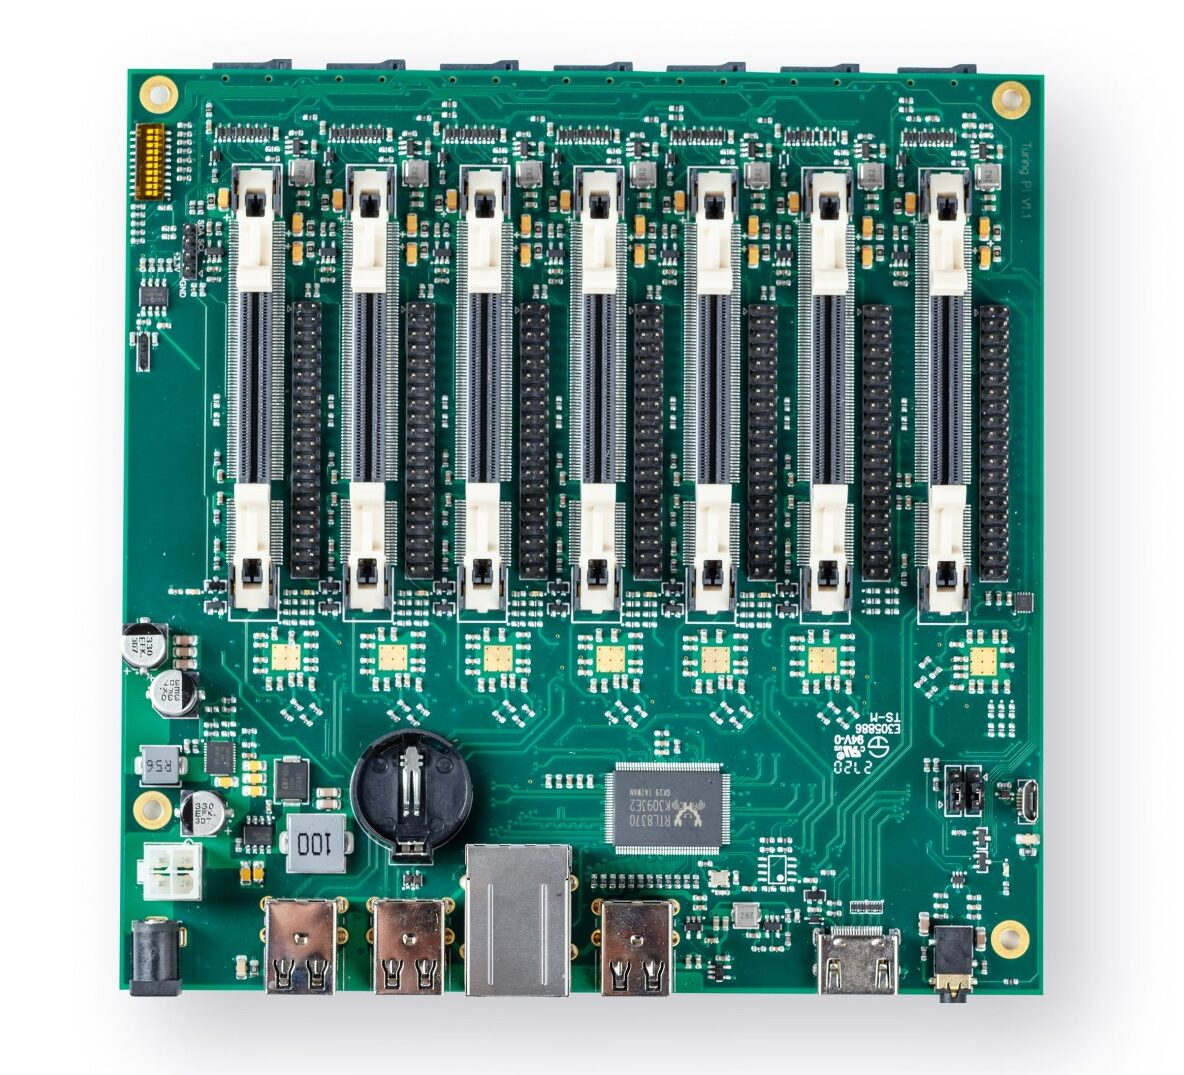 Turing Pi launches its 7-slot Raspberry Pi CM3 cluster board